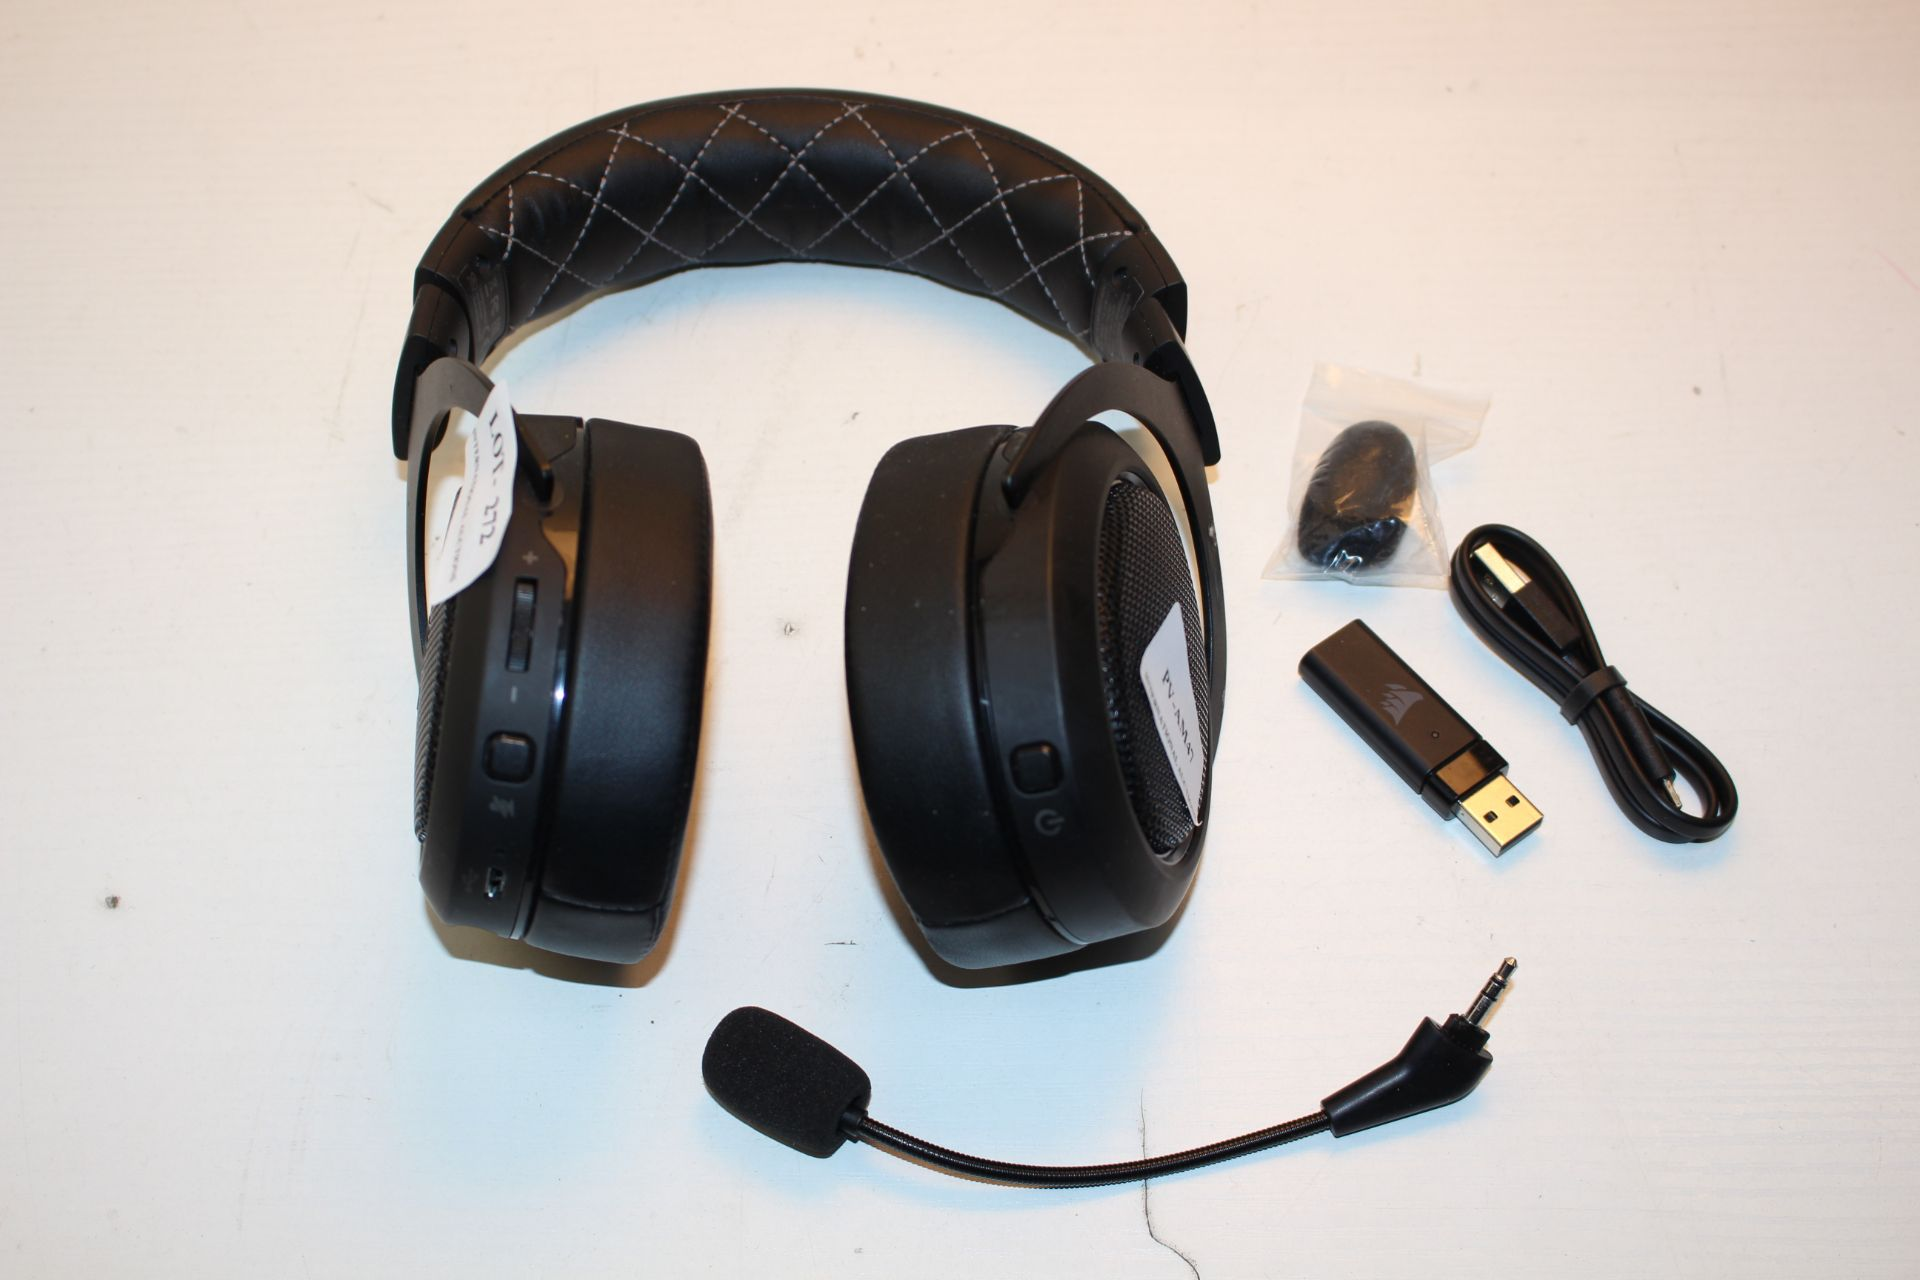 UNBOXED CORSAIR GAMING HEADPHONESCondition ReportAppraisal Available on Request- All Items are